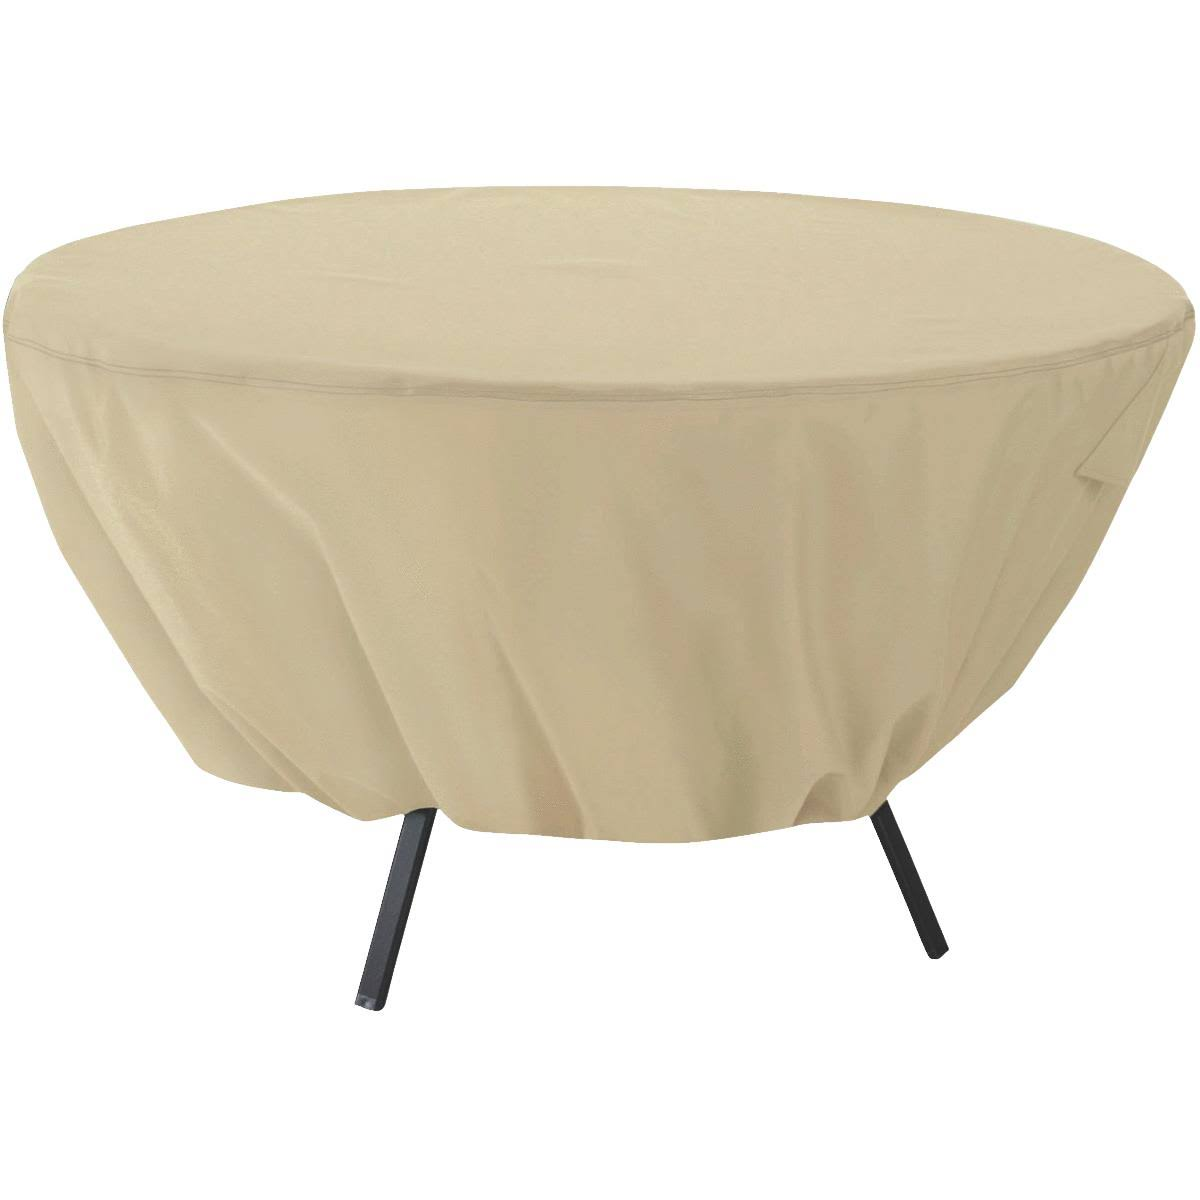 "Classic Accessories Patio Table Cover Round - Tan, 50"" Diameter"